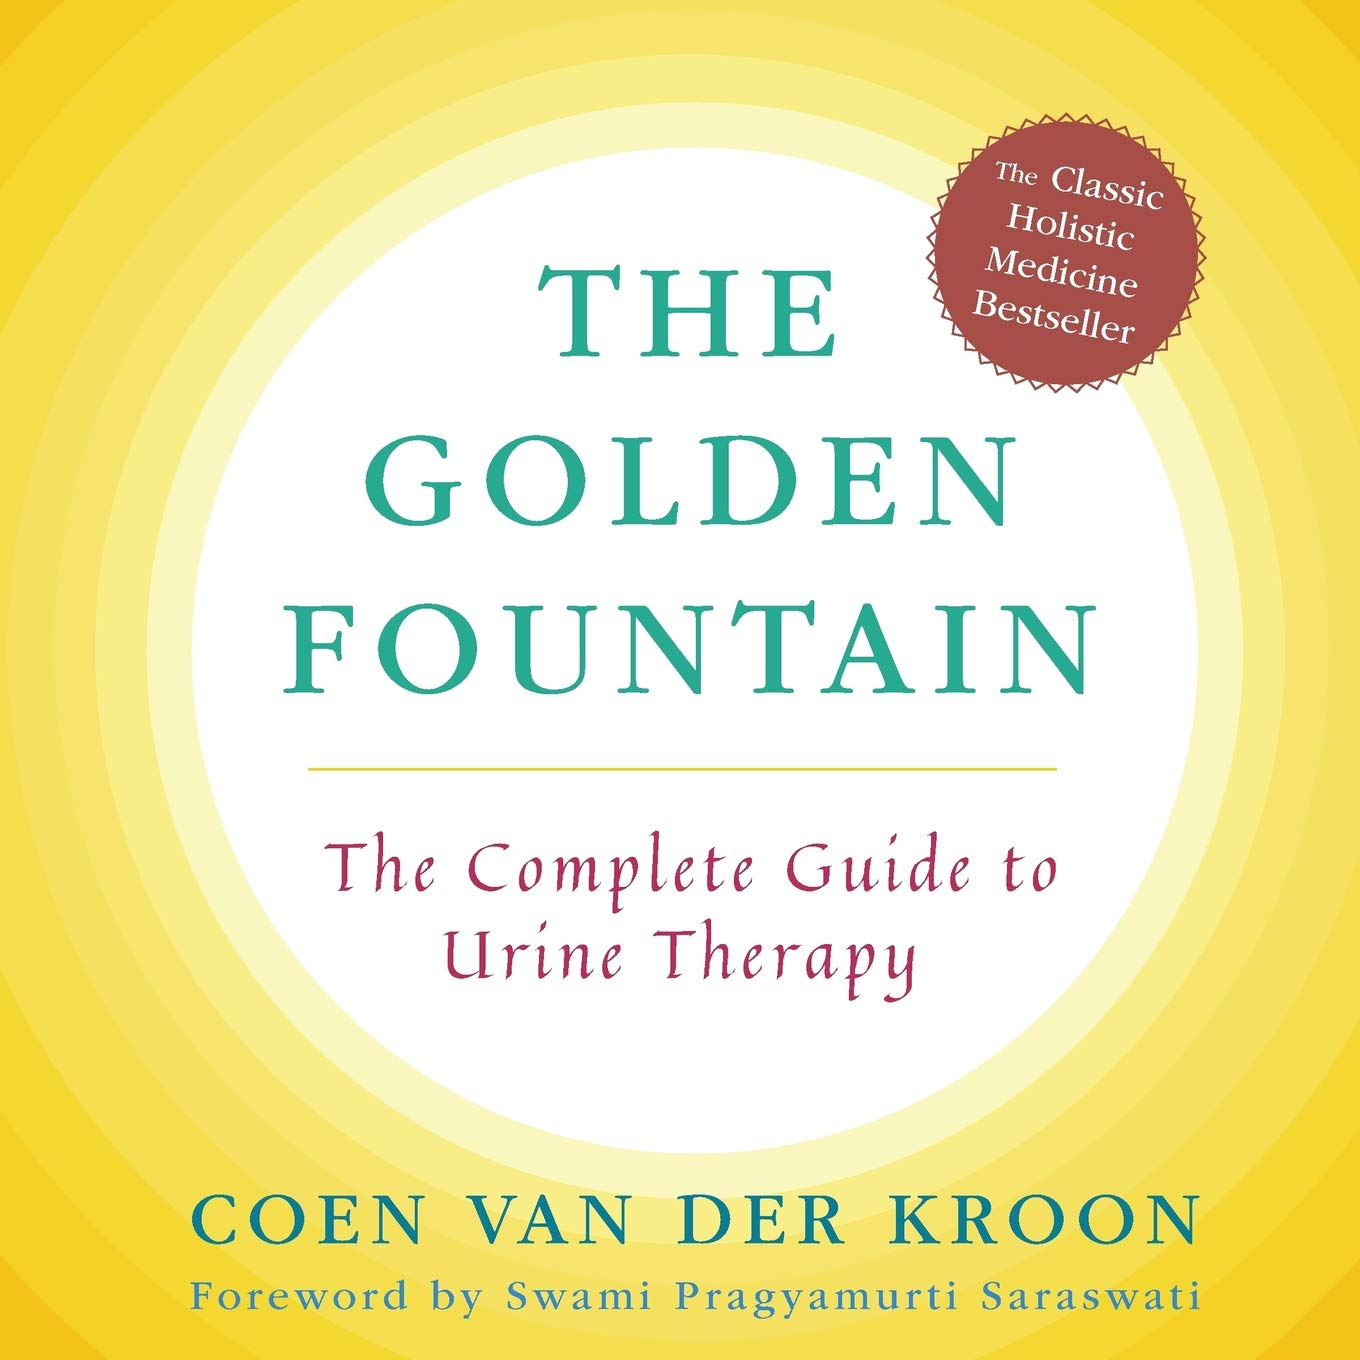 golden fountain: the complete guide to urine therapy - By Coen van der KroonUrine therapy is an ancient Eastern tradition that has recently gained popularity in the West as a natural alternative to modern drugs and surgery. Using the body's own natural antibodies, it can be used internally to relieve symptoms of tuberculosis, tumors, parasites, anemia, common colds, and allergies. It can also aid in external ailments including rashes, acne, boils, burns, and dry skin. This book provides an introduction to the principles of urine therapy, the history of its use, recent research and literature, various medical uses, and personal stories from people who have been cured by urine therapy. Included is a complete bibliography for those interested in expanding their knowledge of urine therapy through other sources.